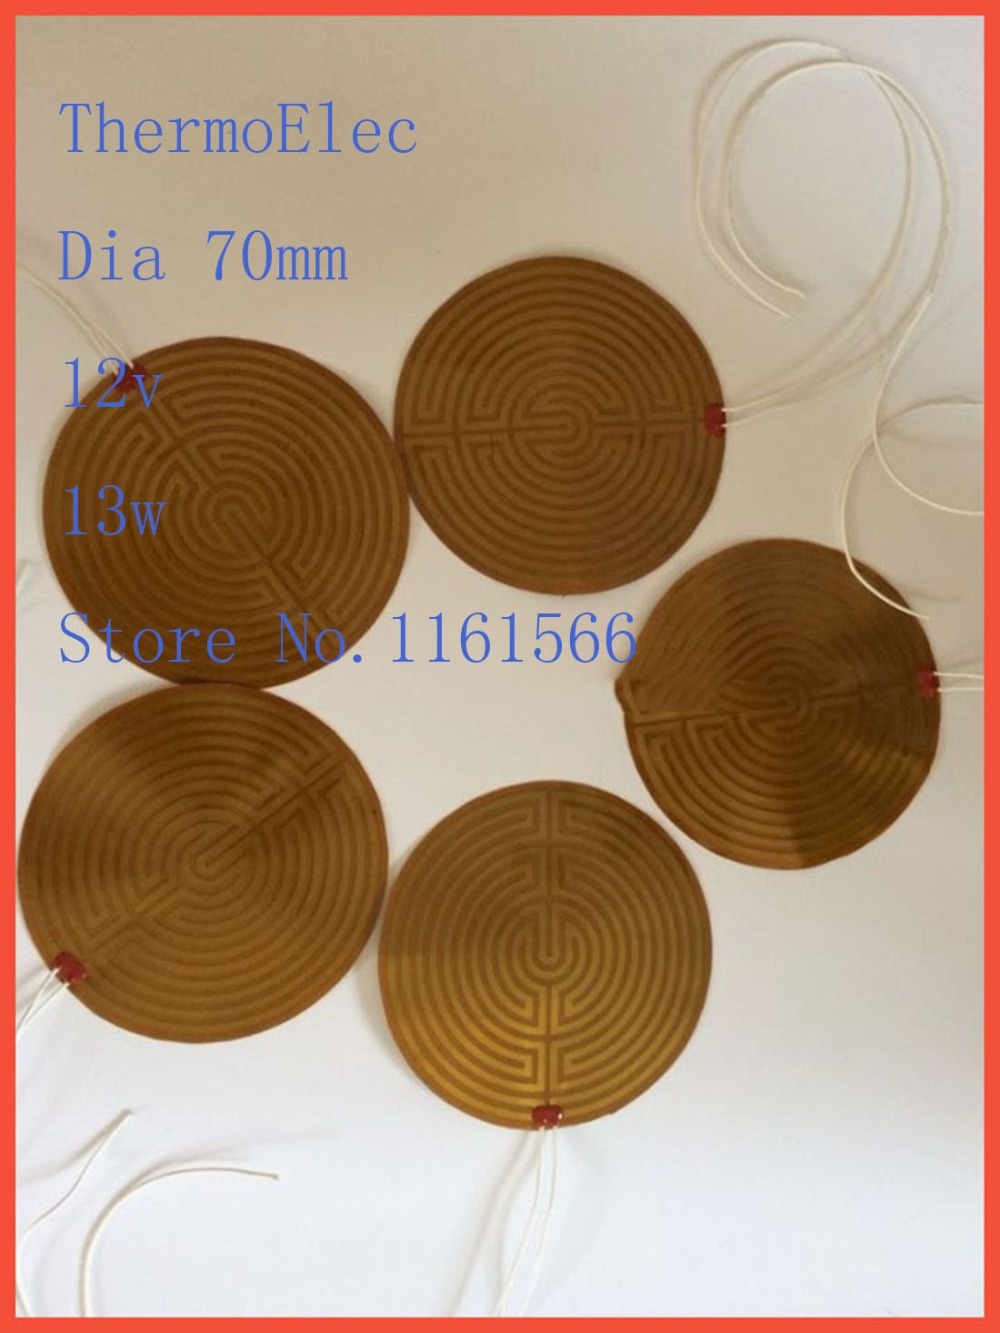 Dia 70mm 12v13w element heating PI film polyimide heater heat rubber electric flexible heated bad Hot 3D printing series heating dia 400mm 900w 120v 3m ntc 100k round tank silicone heater huge 3d printer build plate heated bed electric heating plate element